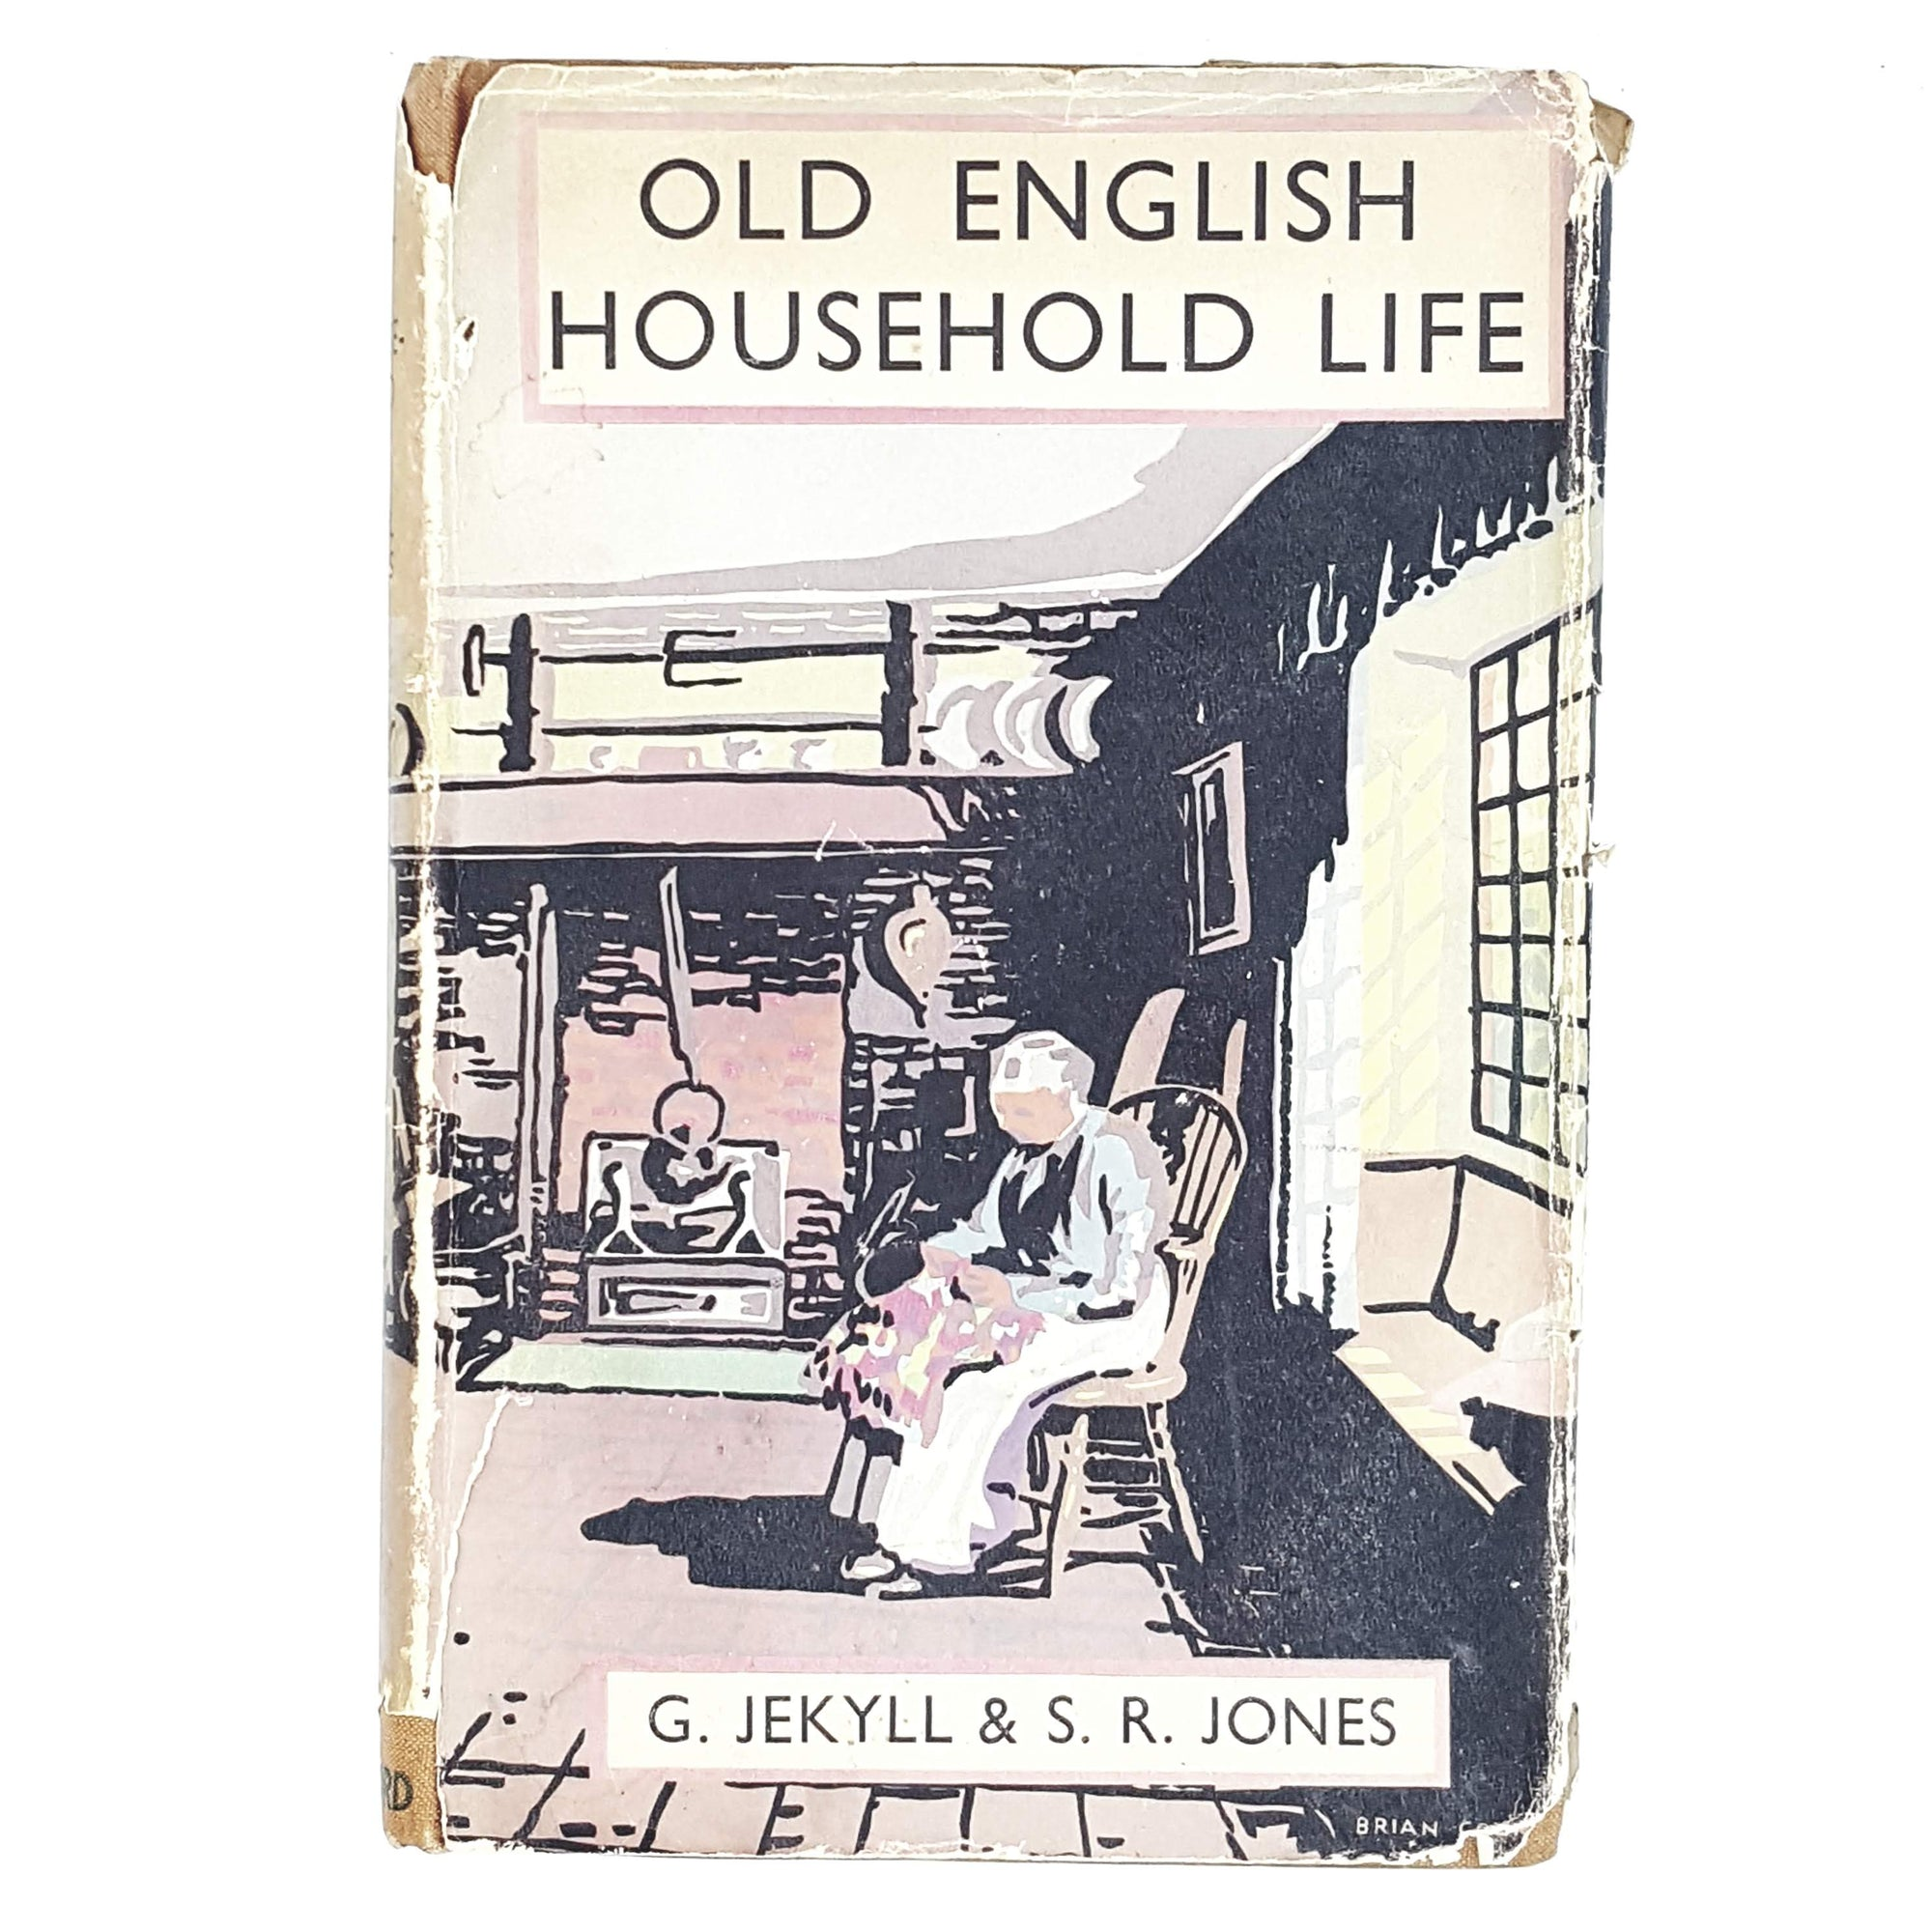 Illustrated Old English Household Life by G. Jekyll & S. R. Jones 1945